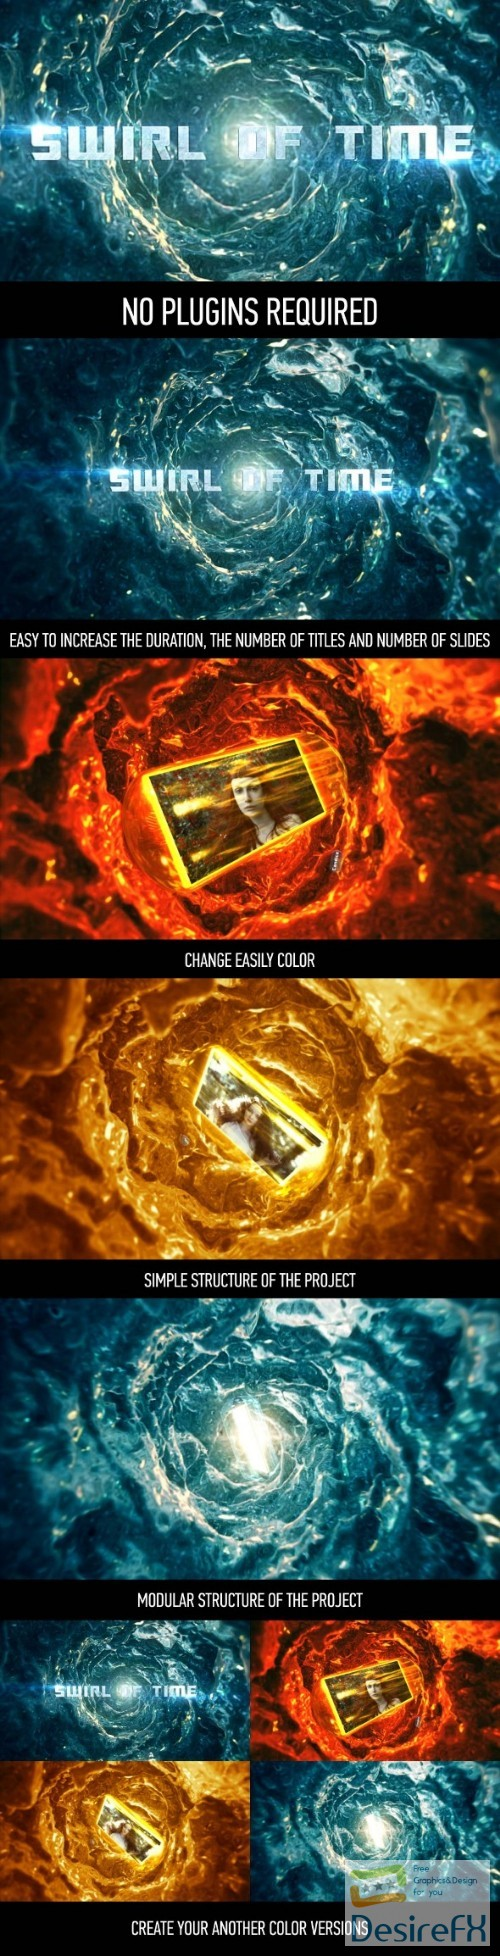 after-effects-projects - Videohive Swirl of Time 15774949